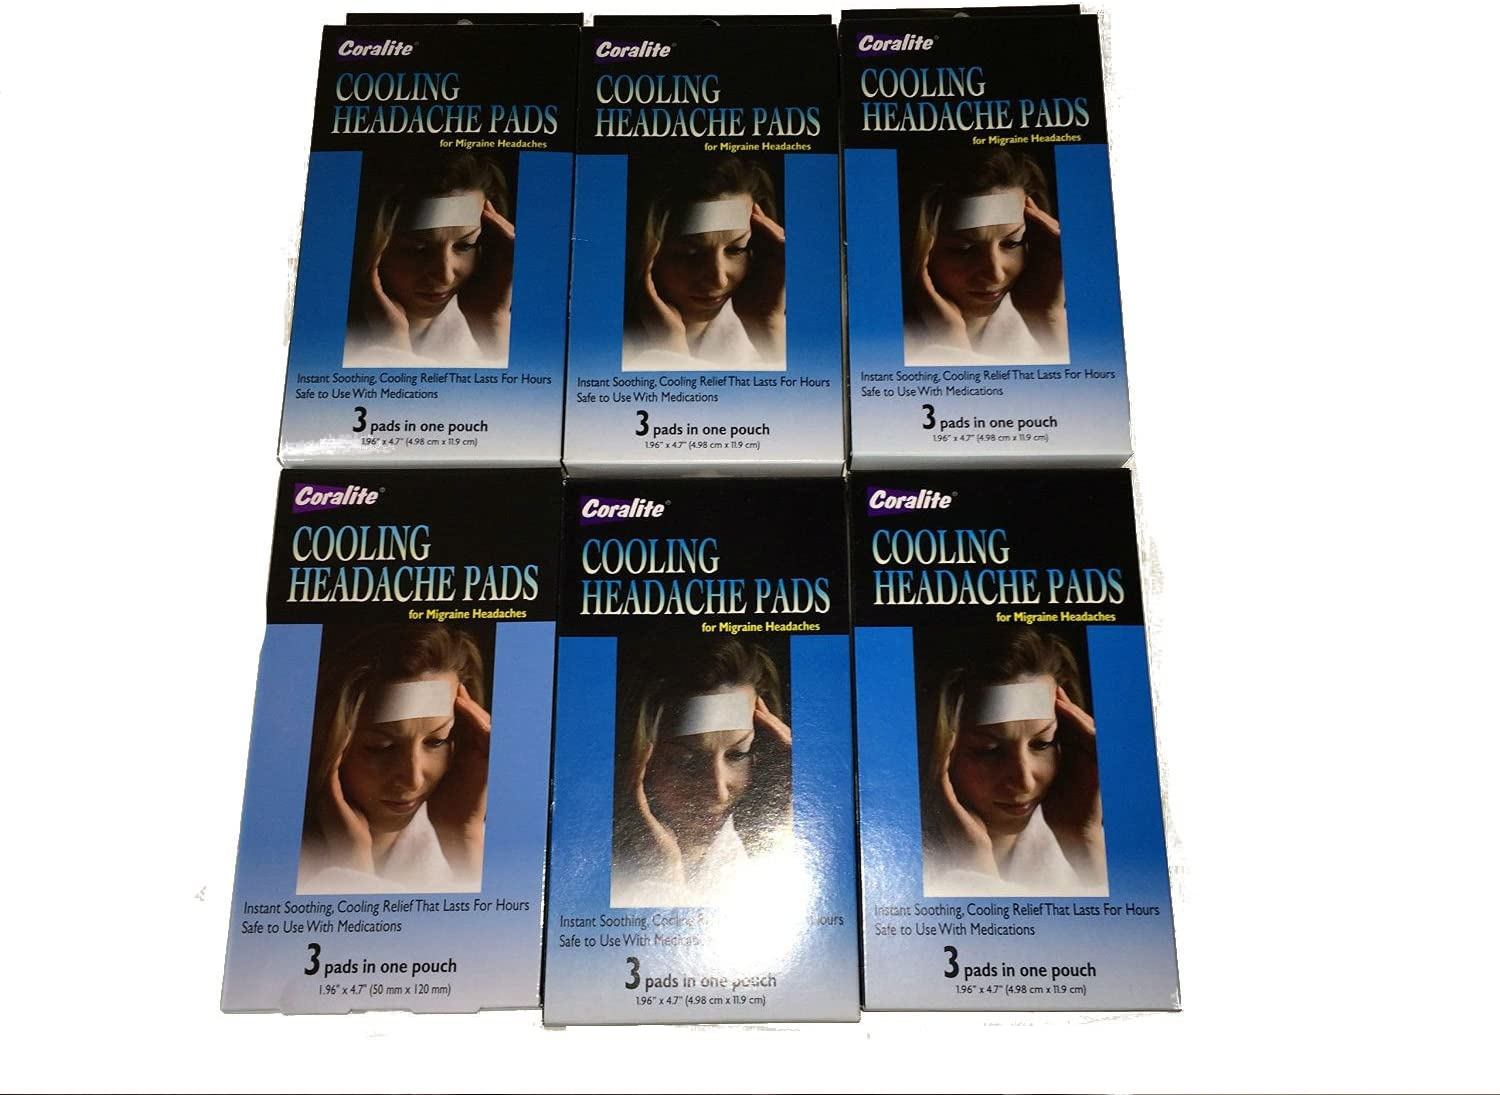 Headache Cooling Pads 3 Per Pack (6 Pack) 18 Total